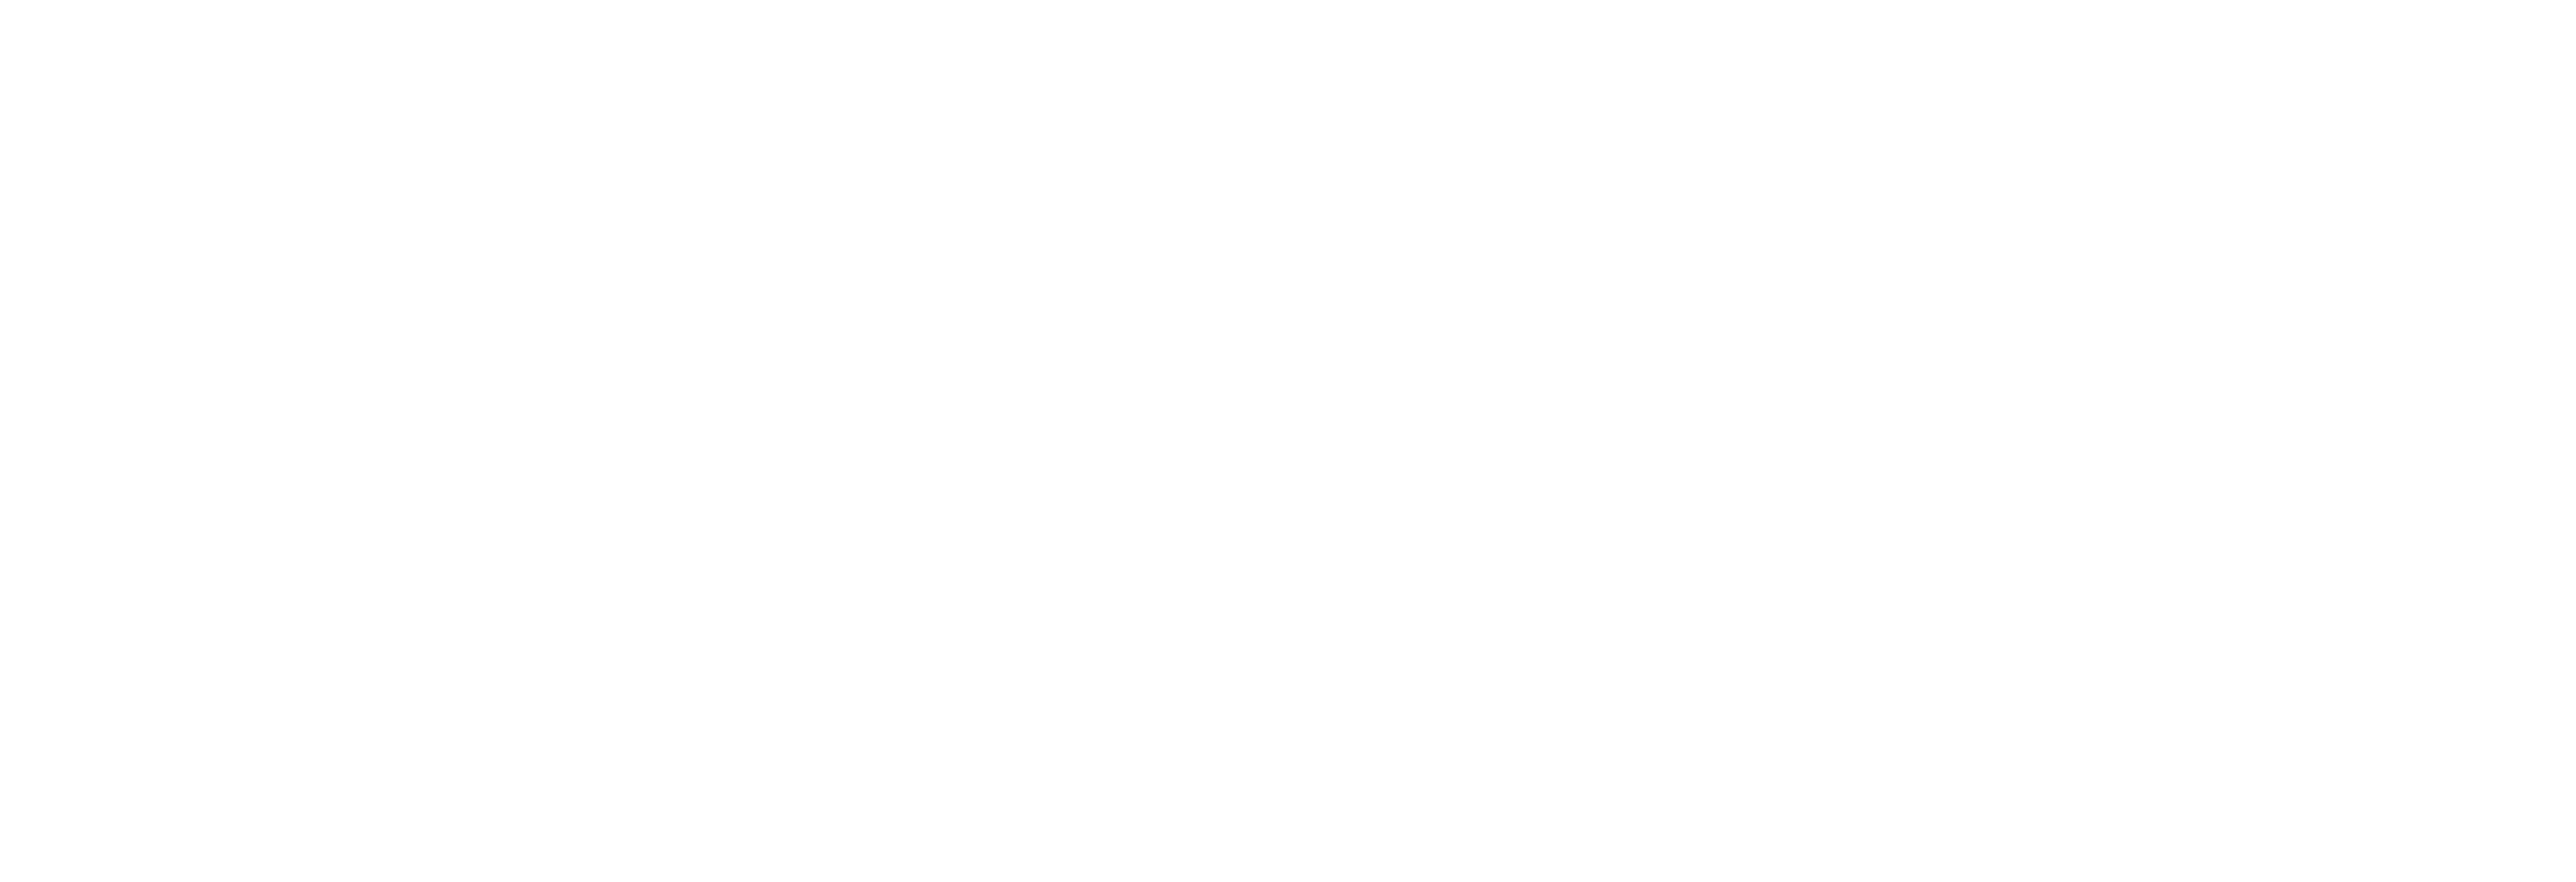 King's Real Estate and Property Society (KREPS)